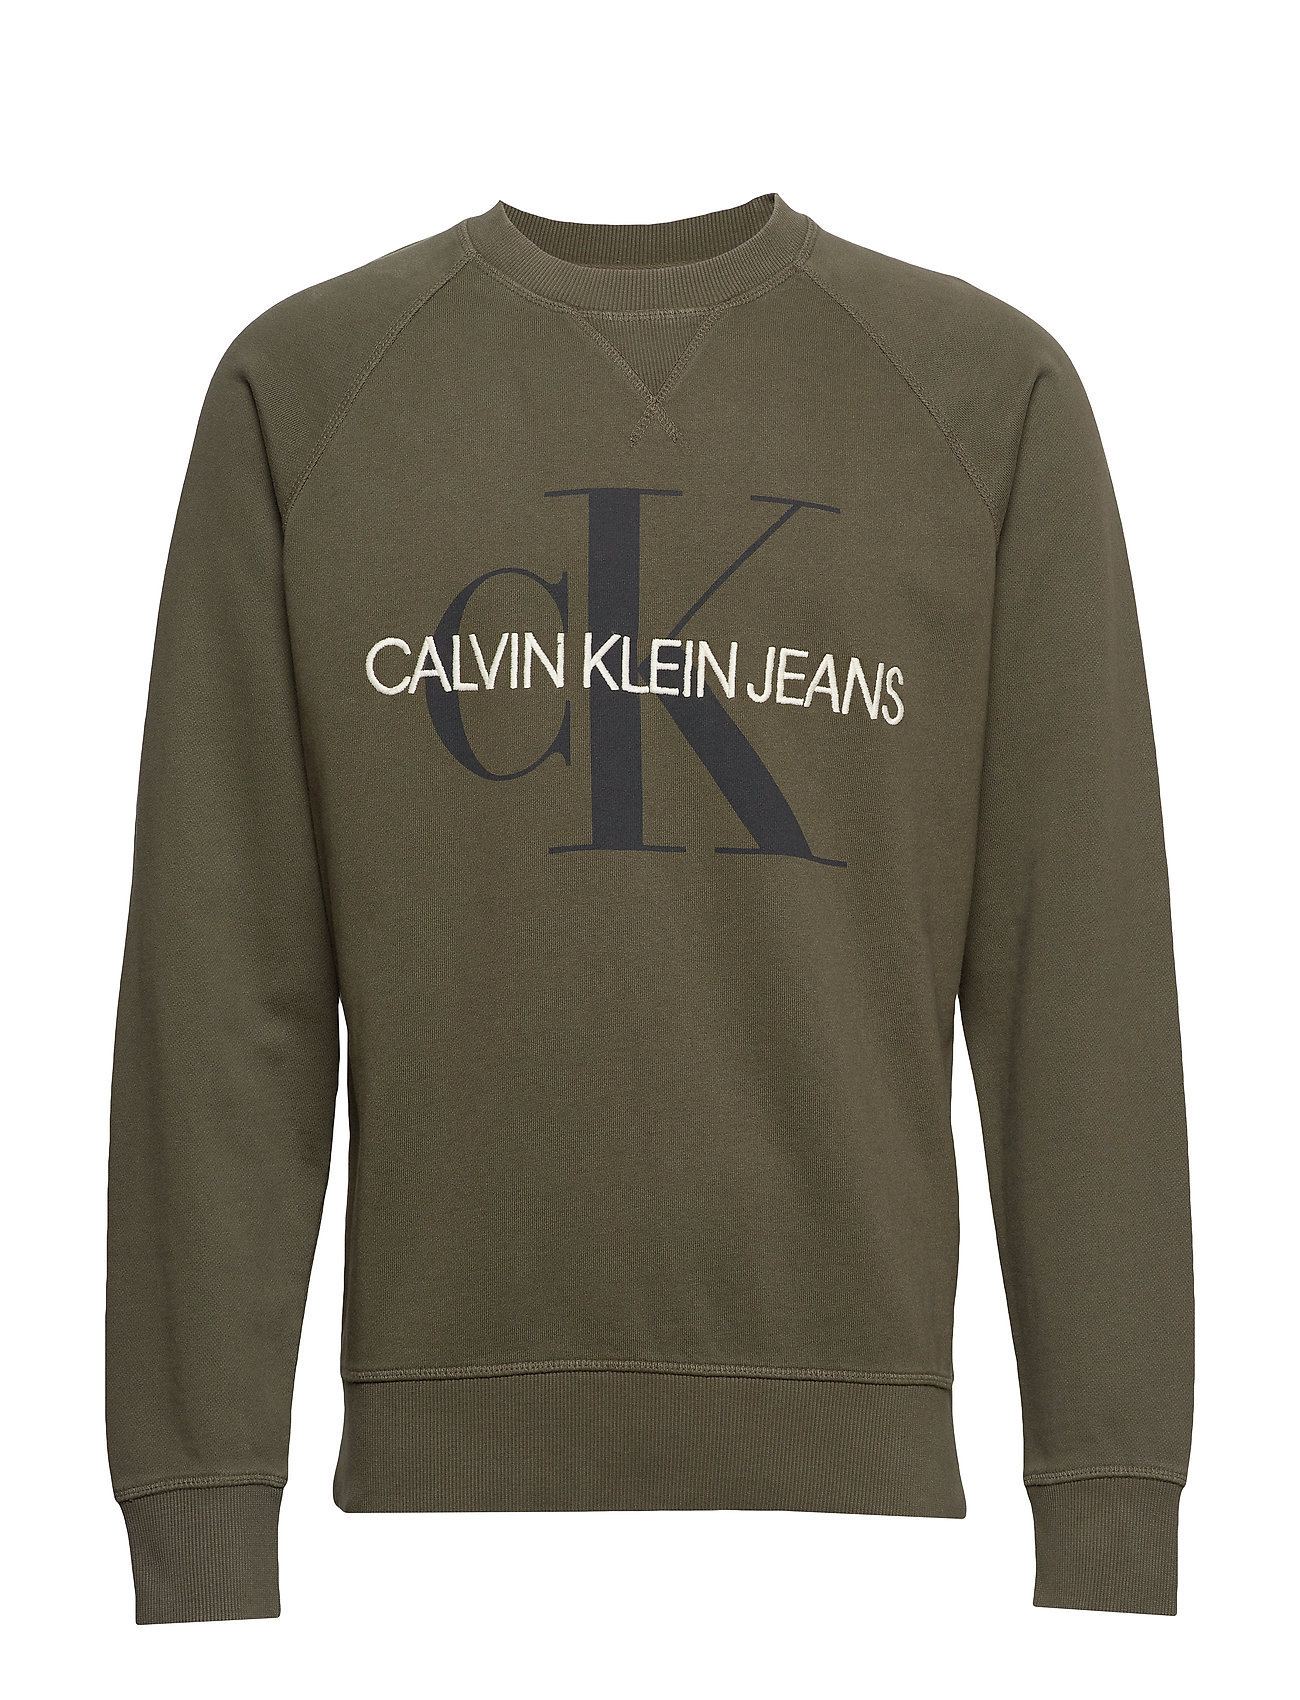 Calvin Klein Jeans WASHED REG MONOGRAM - GRAPE LEAF